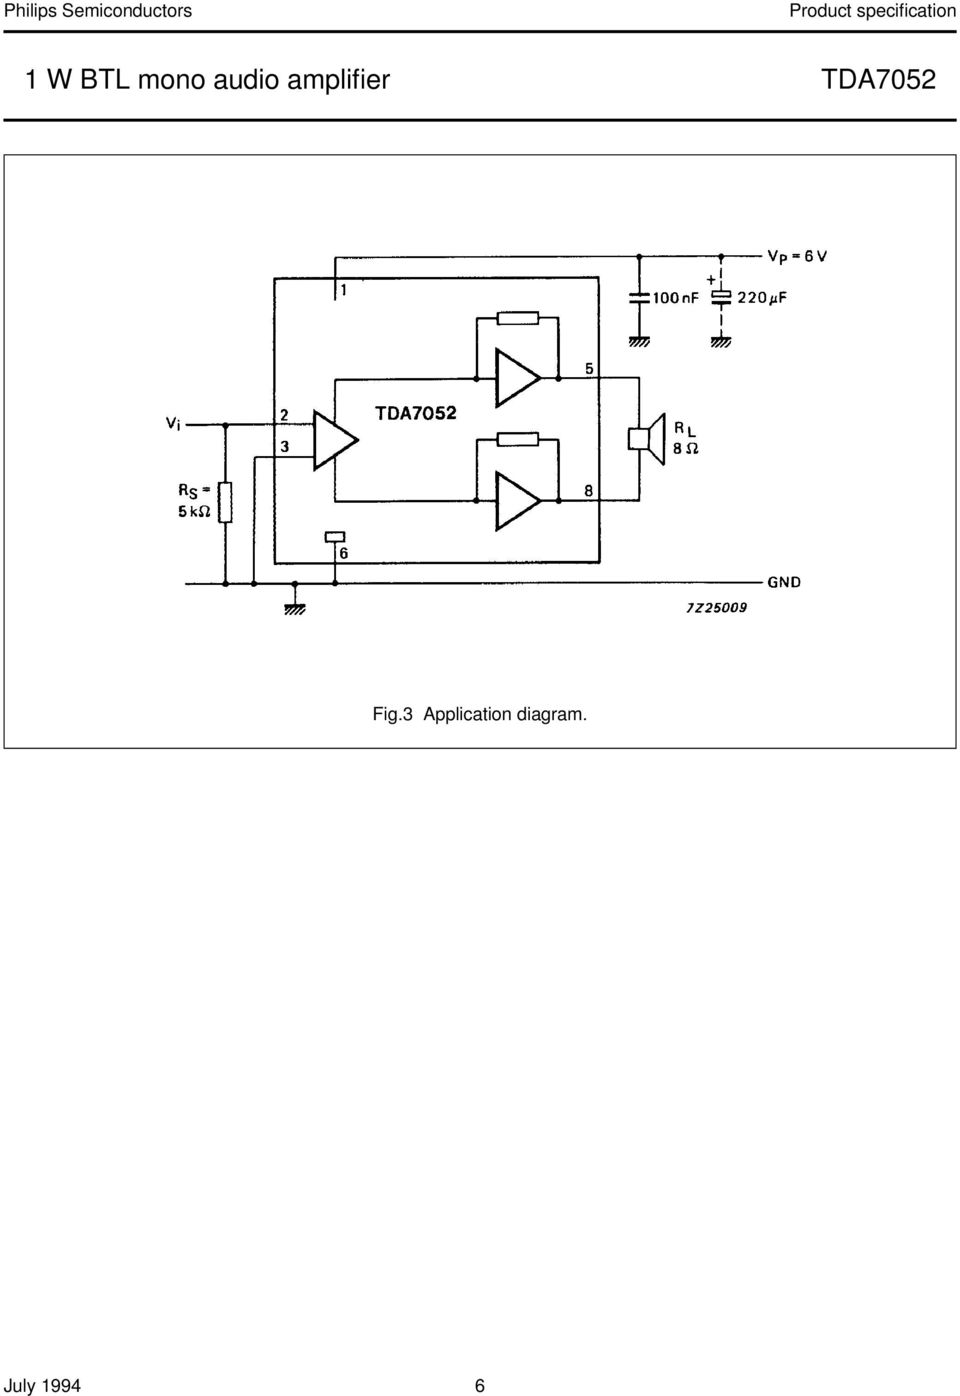 Kit 27 1w Tda7052 Power Amplifier Pdf How To Build Your Own 10watt Using An Ic Tda 2003 8 Package Outline Dip8 Plastic Dual In Line Leads 300 Mil Sot97 1 D M E Seating Plane A 2 L Z B W C